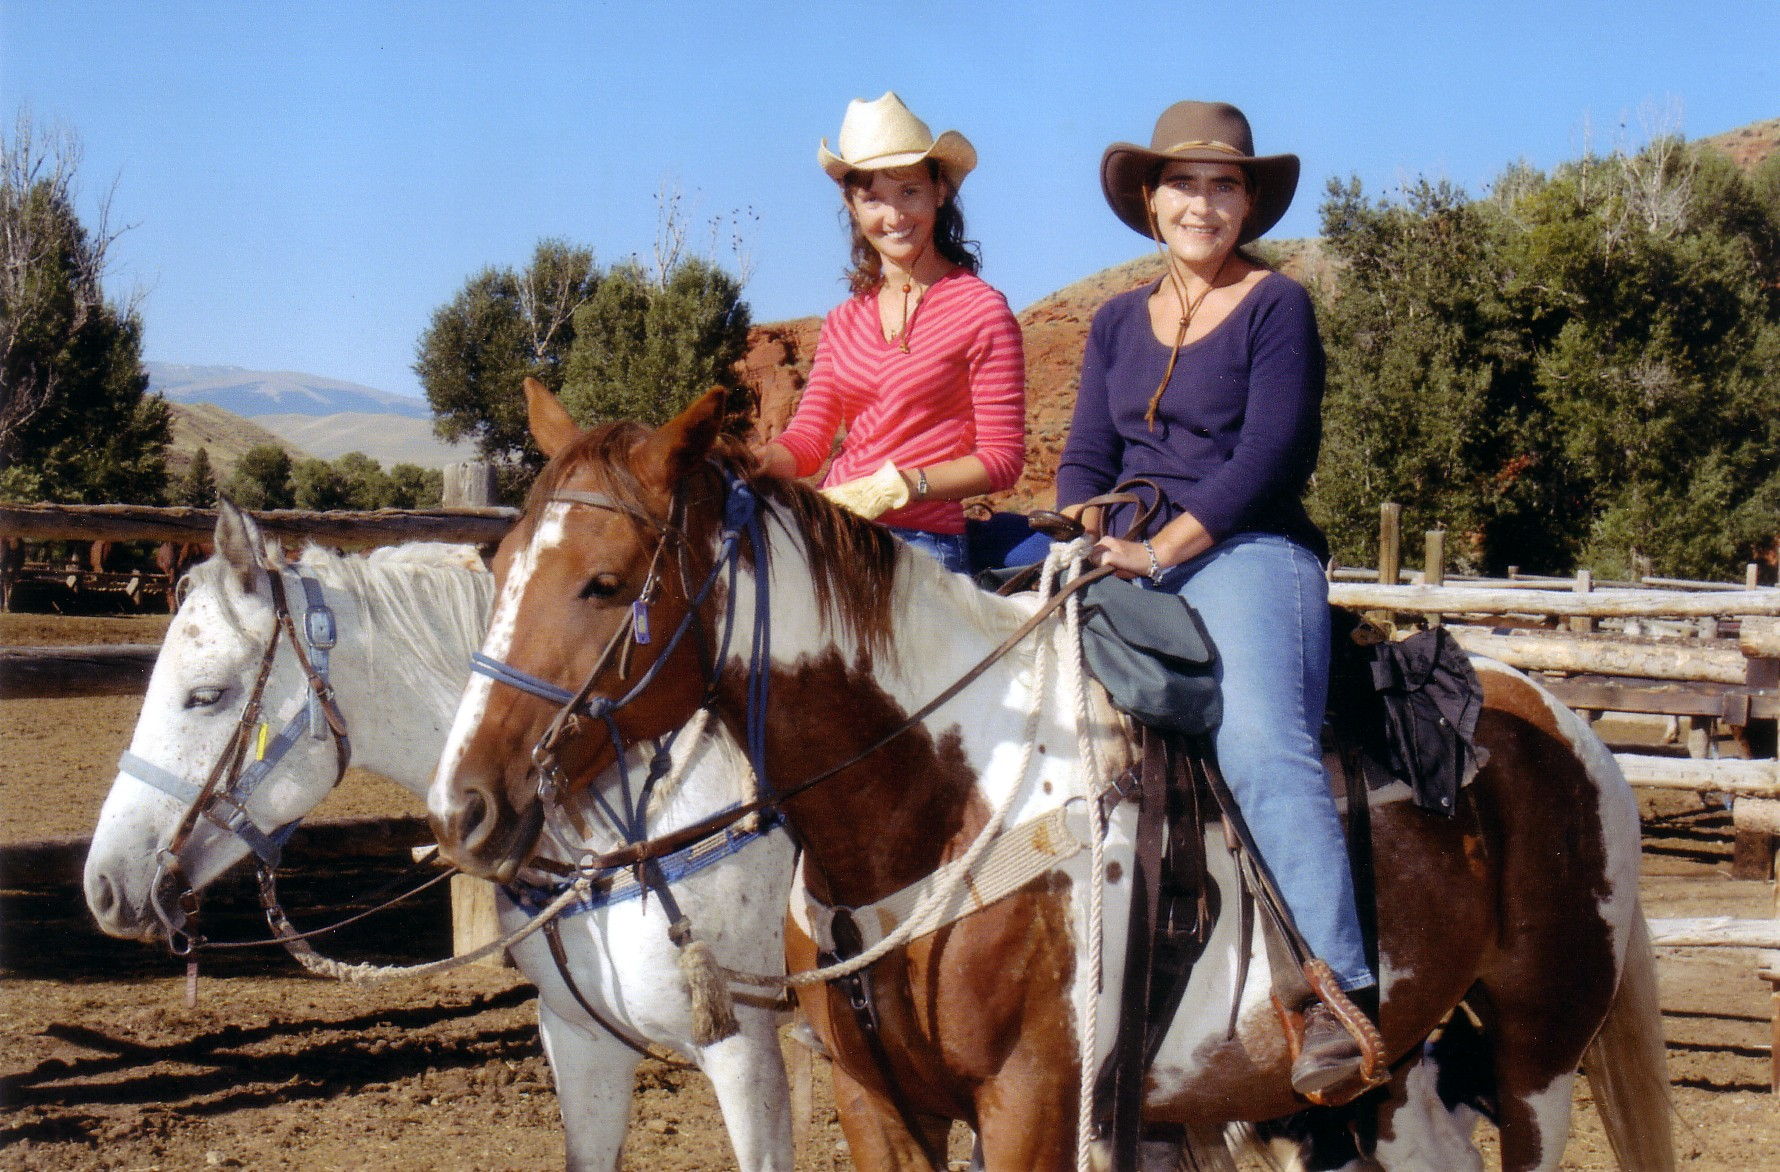 Drs. Heike Wulff and Christine Beeton in Wyoming, 2005